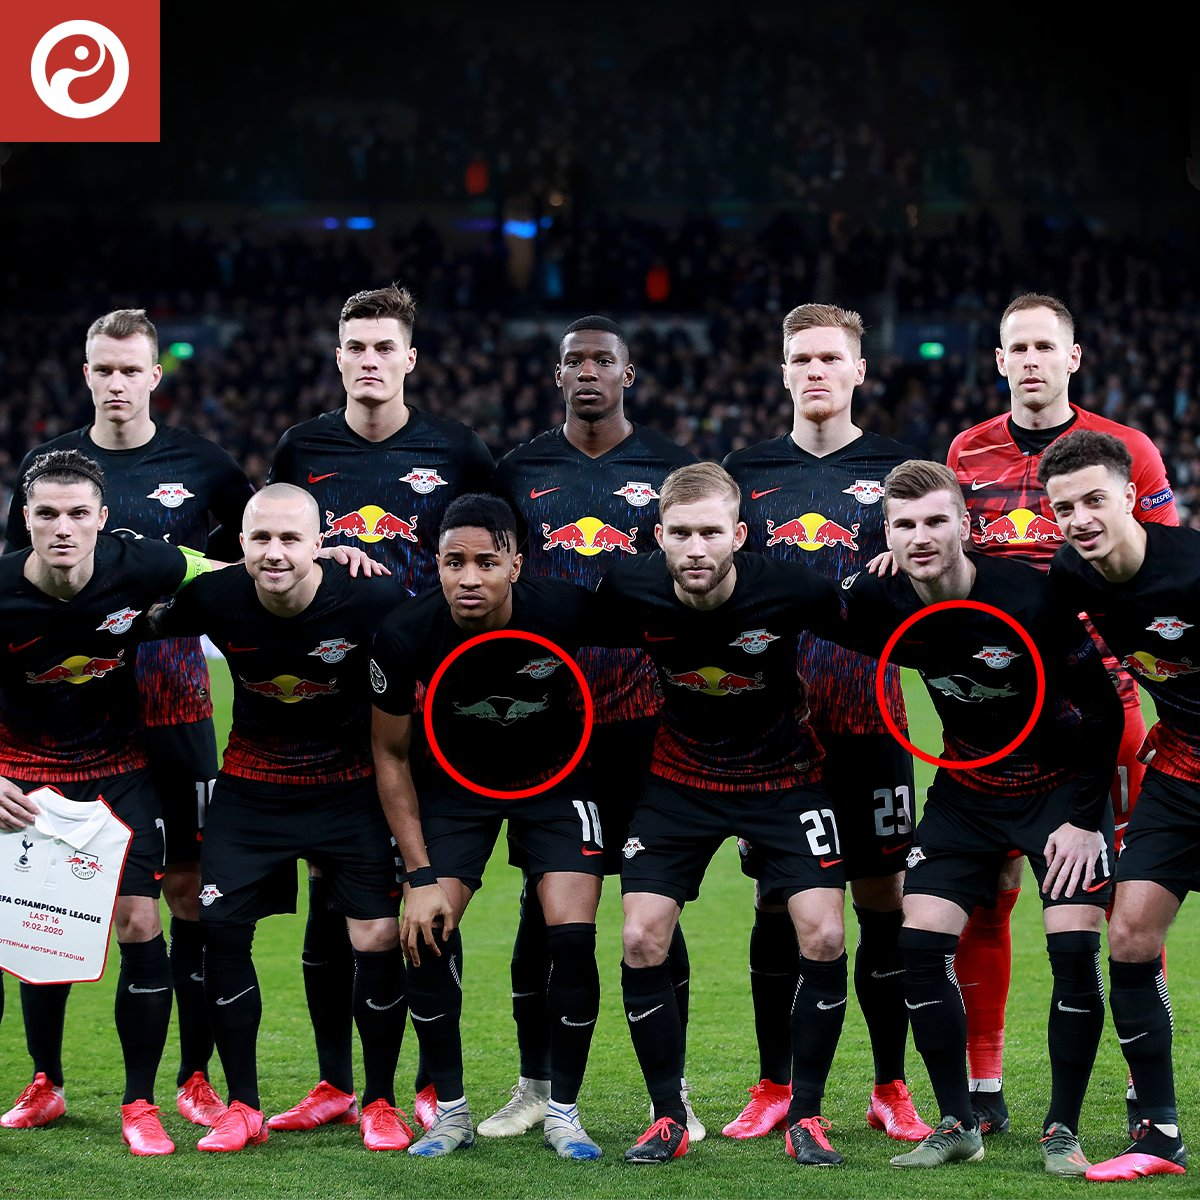 EXPLAINED: Why RB Leipzig had two different coloured sponsors against Tottenham - bit.ly/RBColours